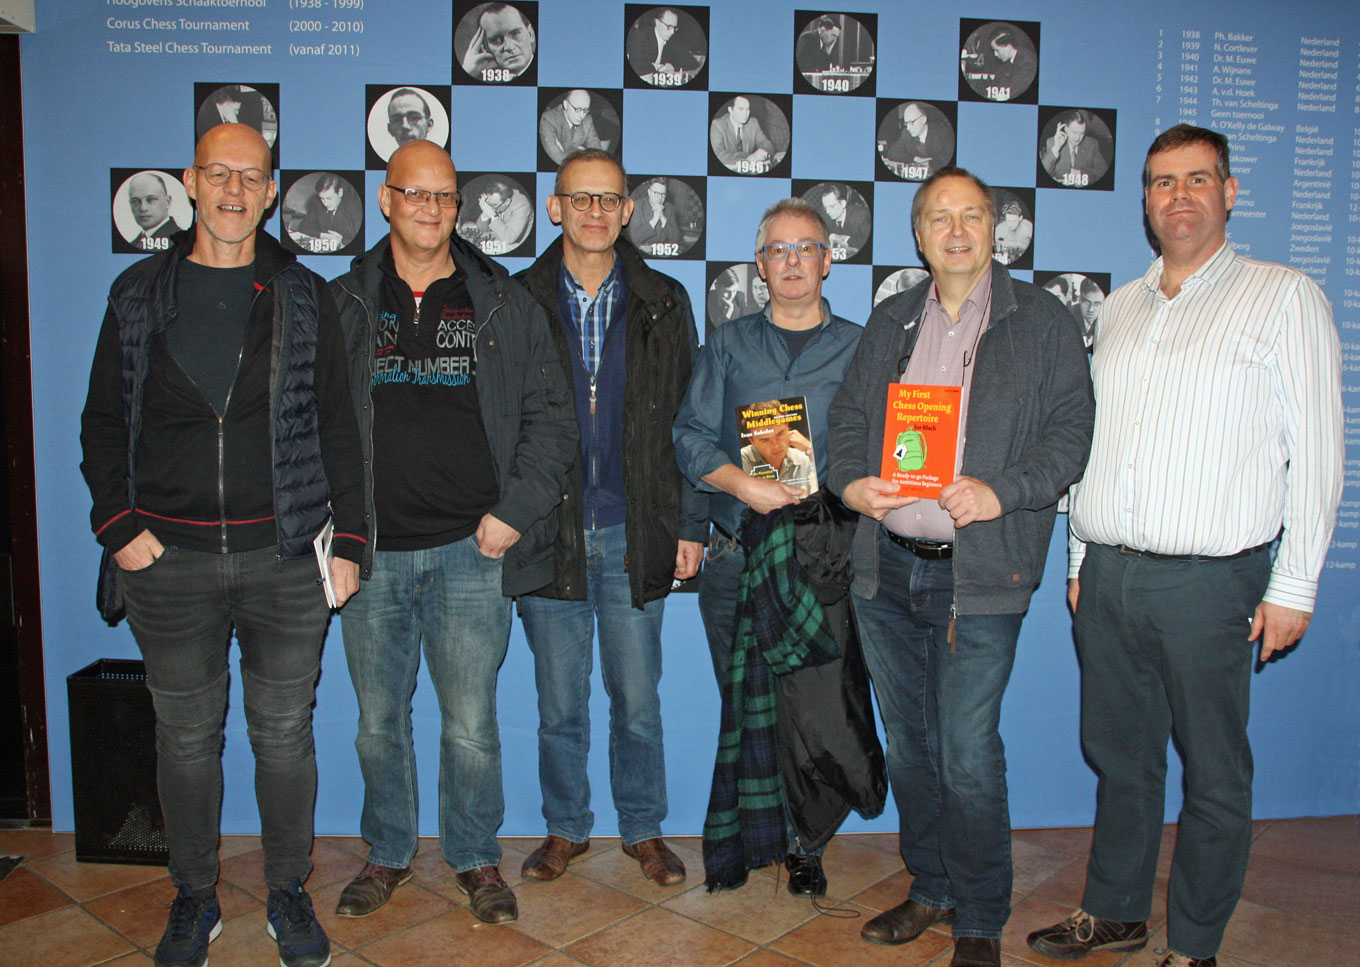 2018 Limburgse spelers in Tata Steel Chess Tournament